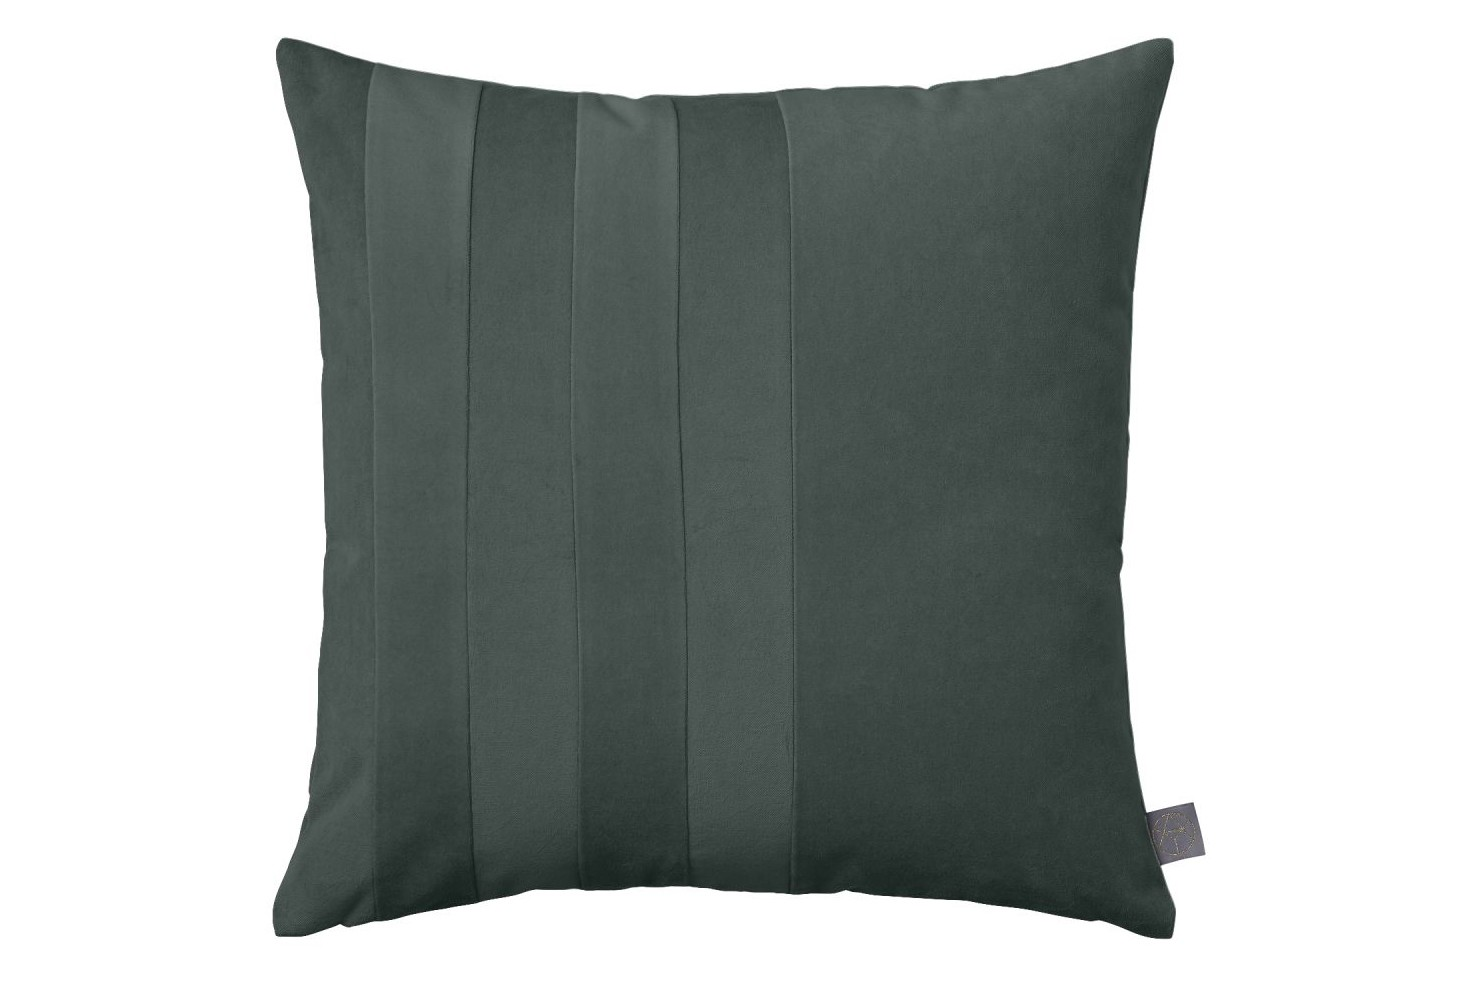 Sanati Cushion - Set of 2 Forest